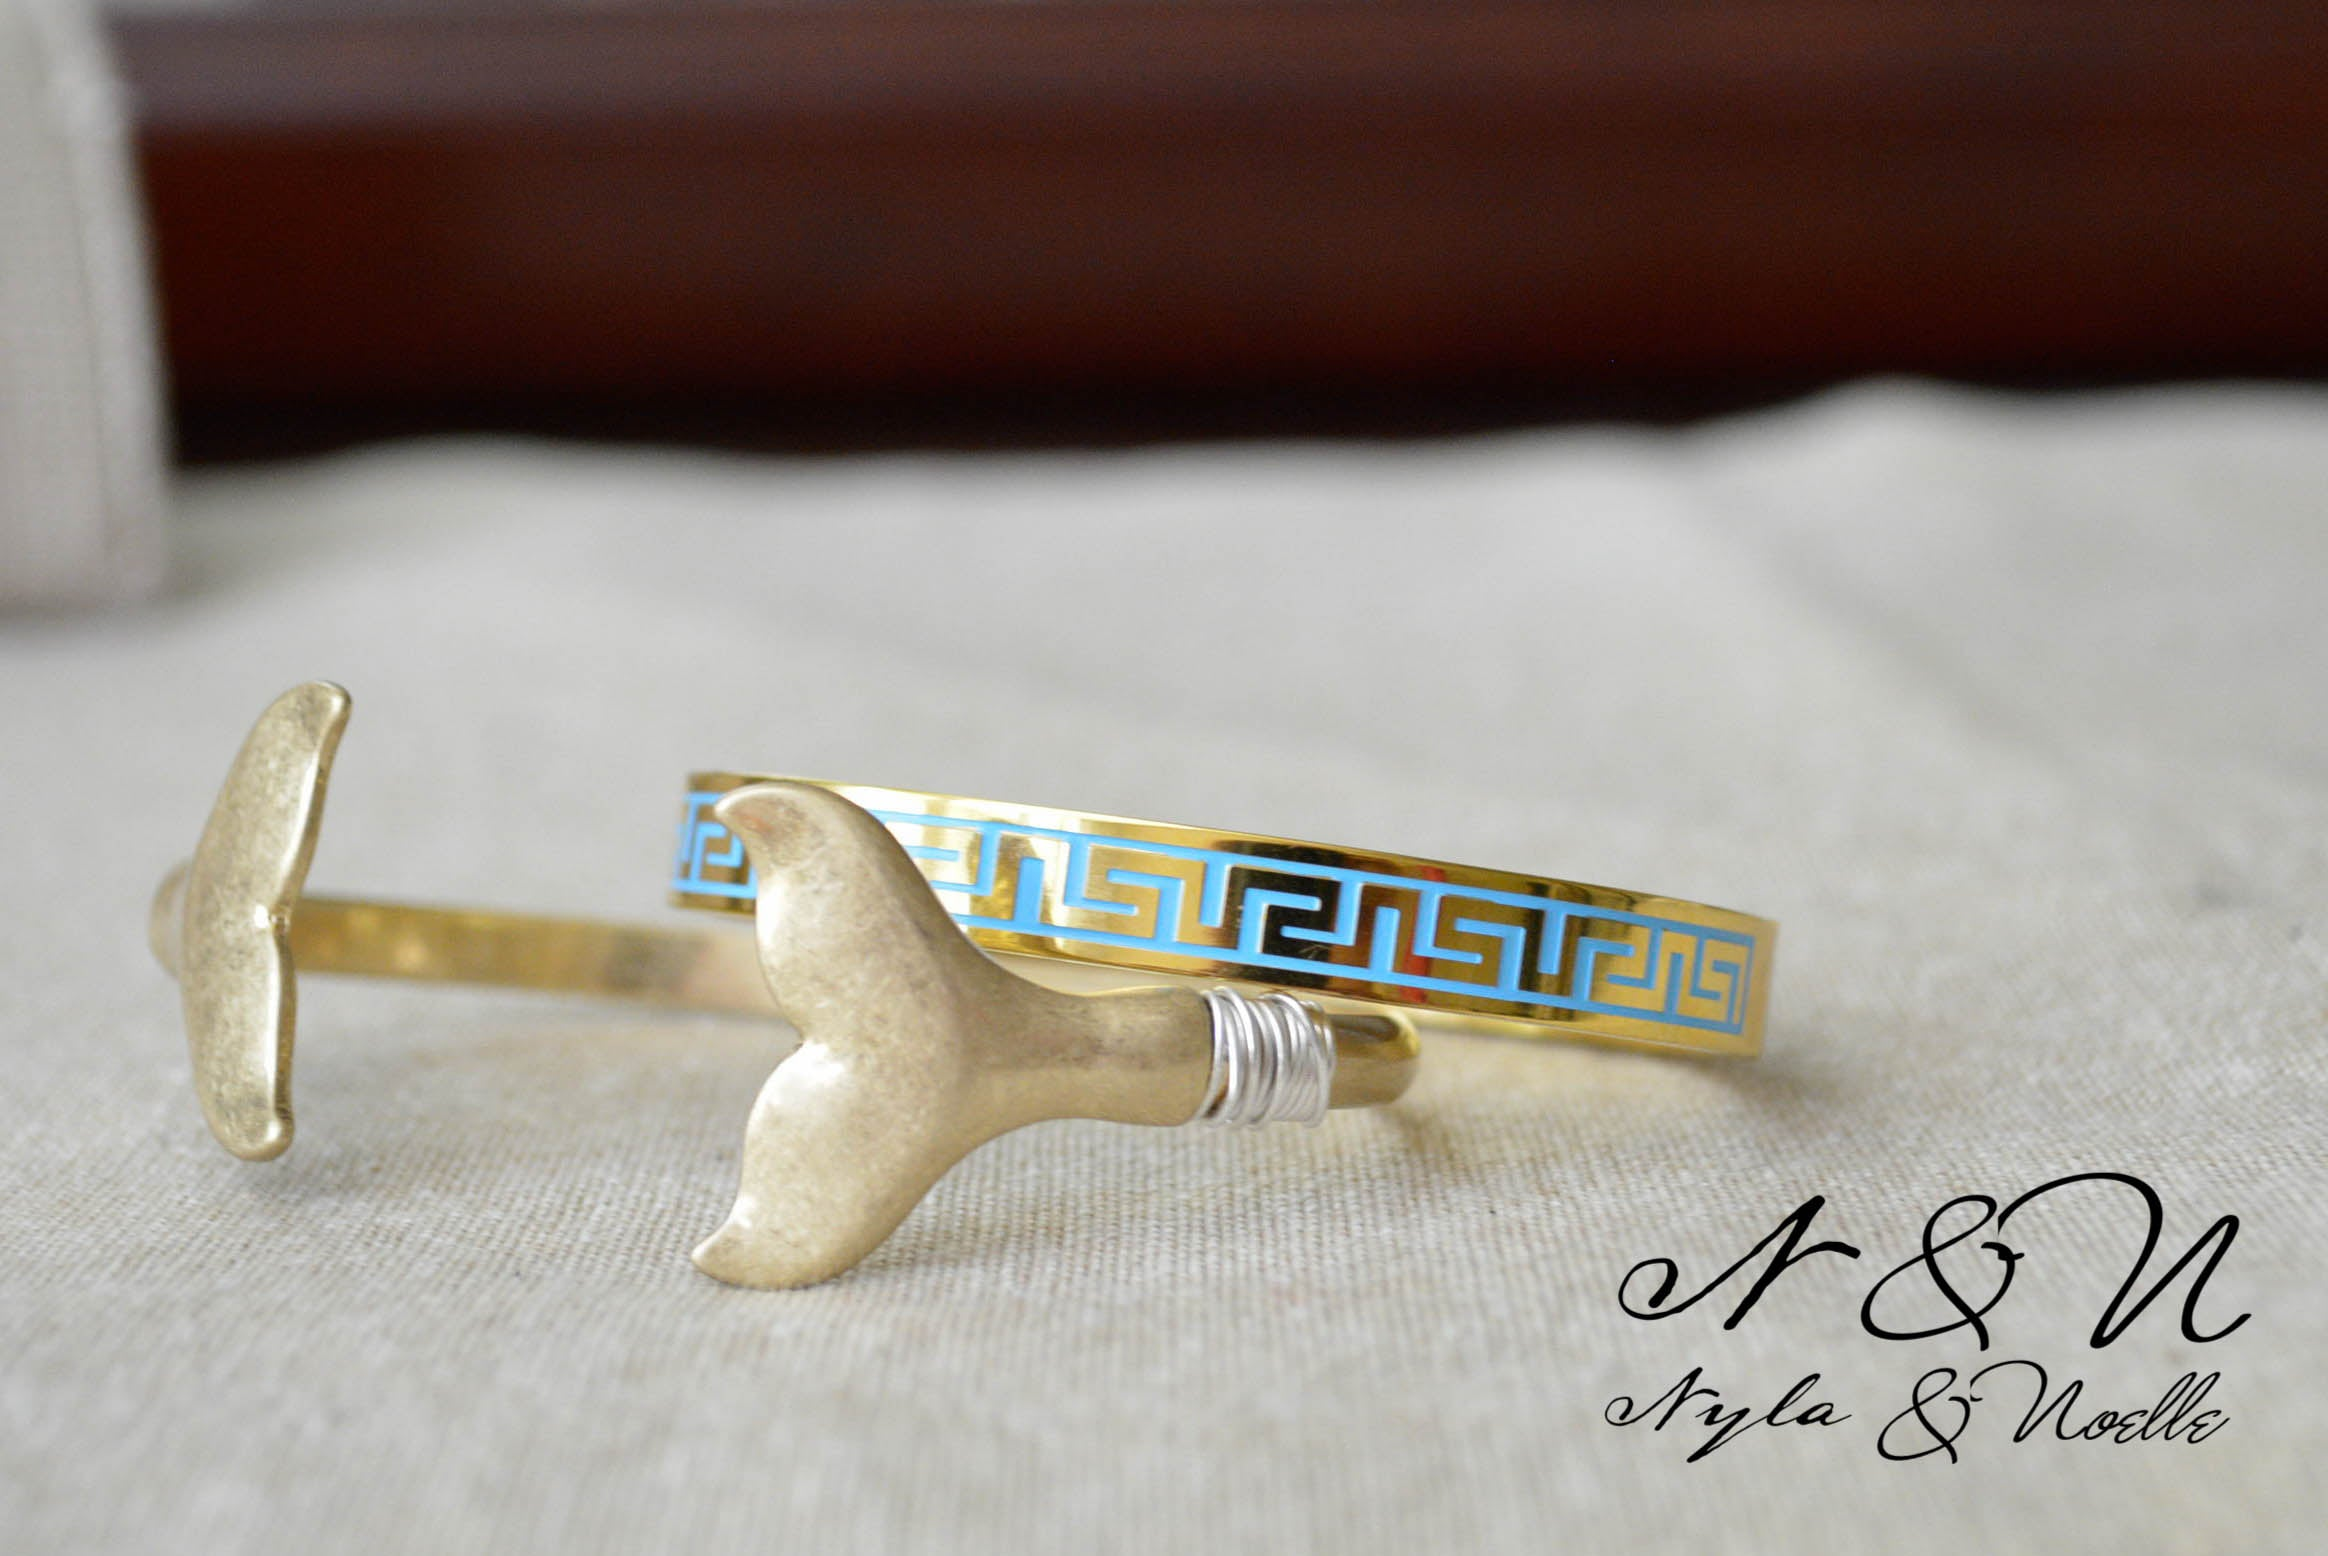 AQUA CLOISONNE - Stainless Steel Clam Shell Bangle